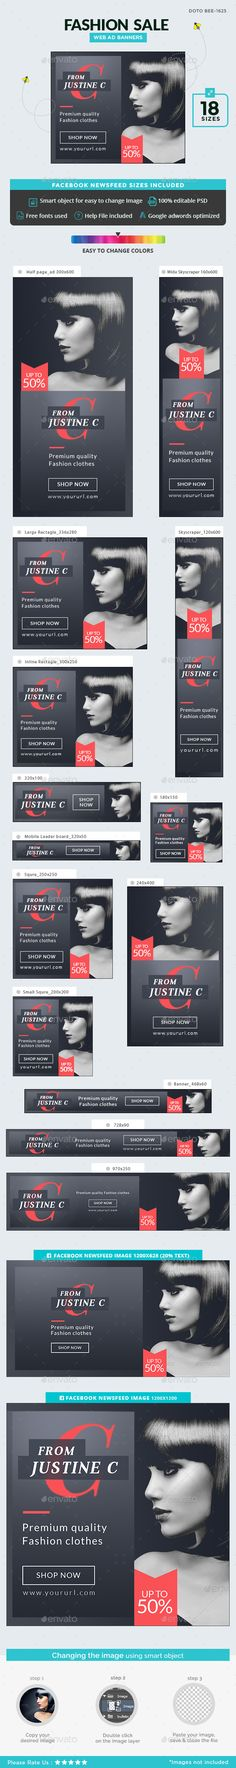 Fashion Sale Banners Template PSD. Download here: https://graphicriver.net/item/fashion-sale-banners/17442954?ref=ksioks